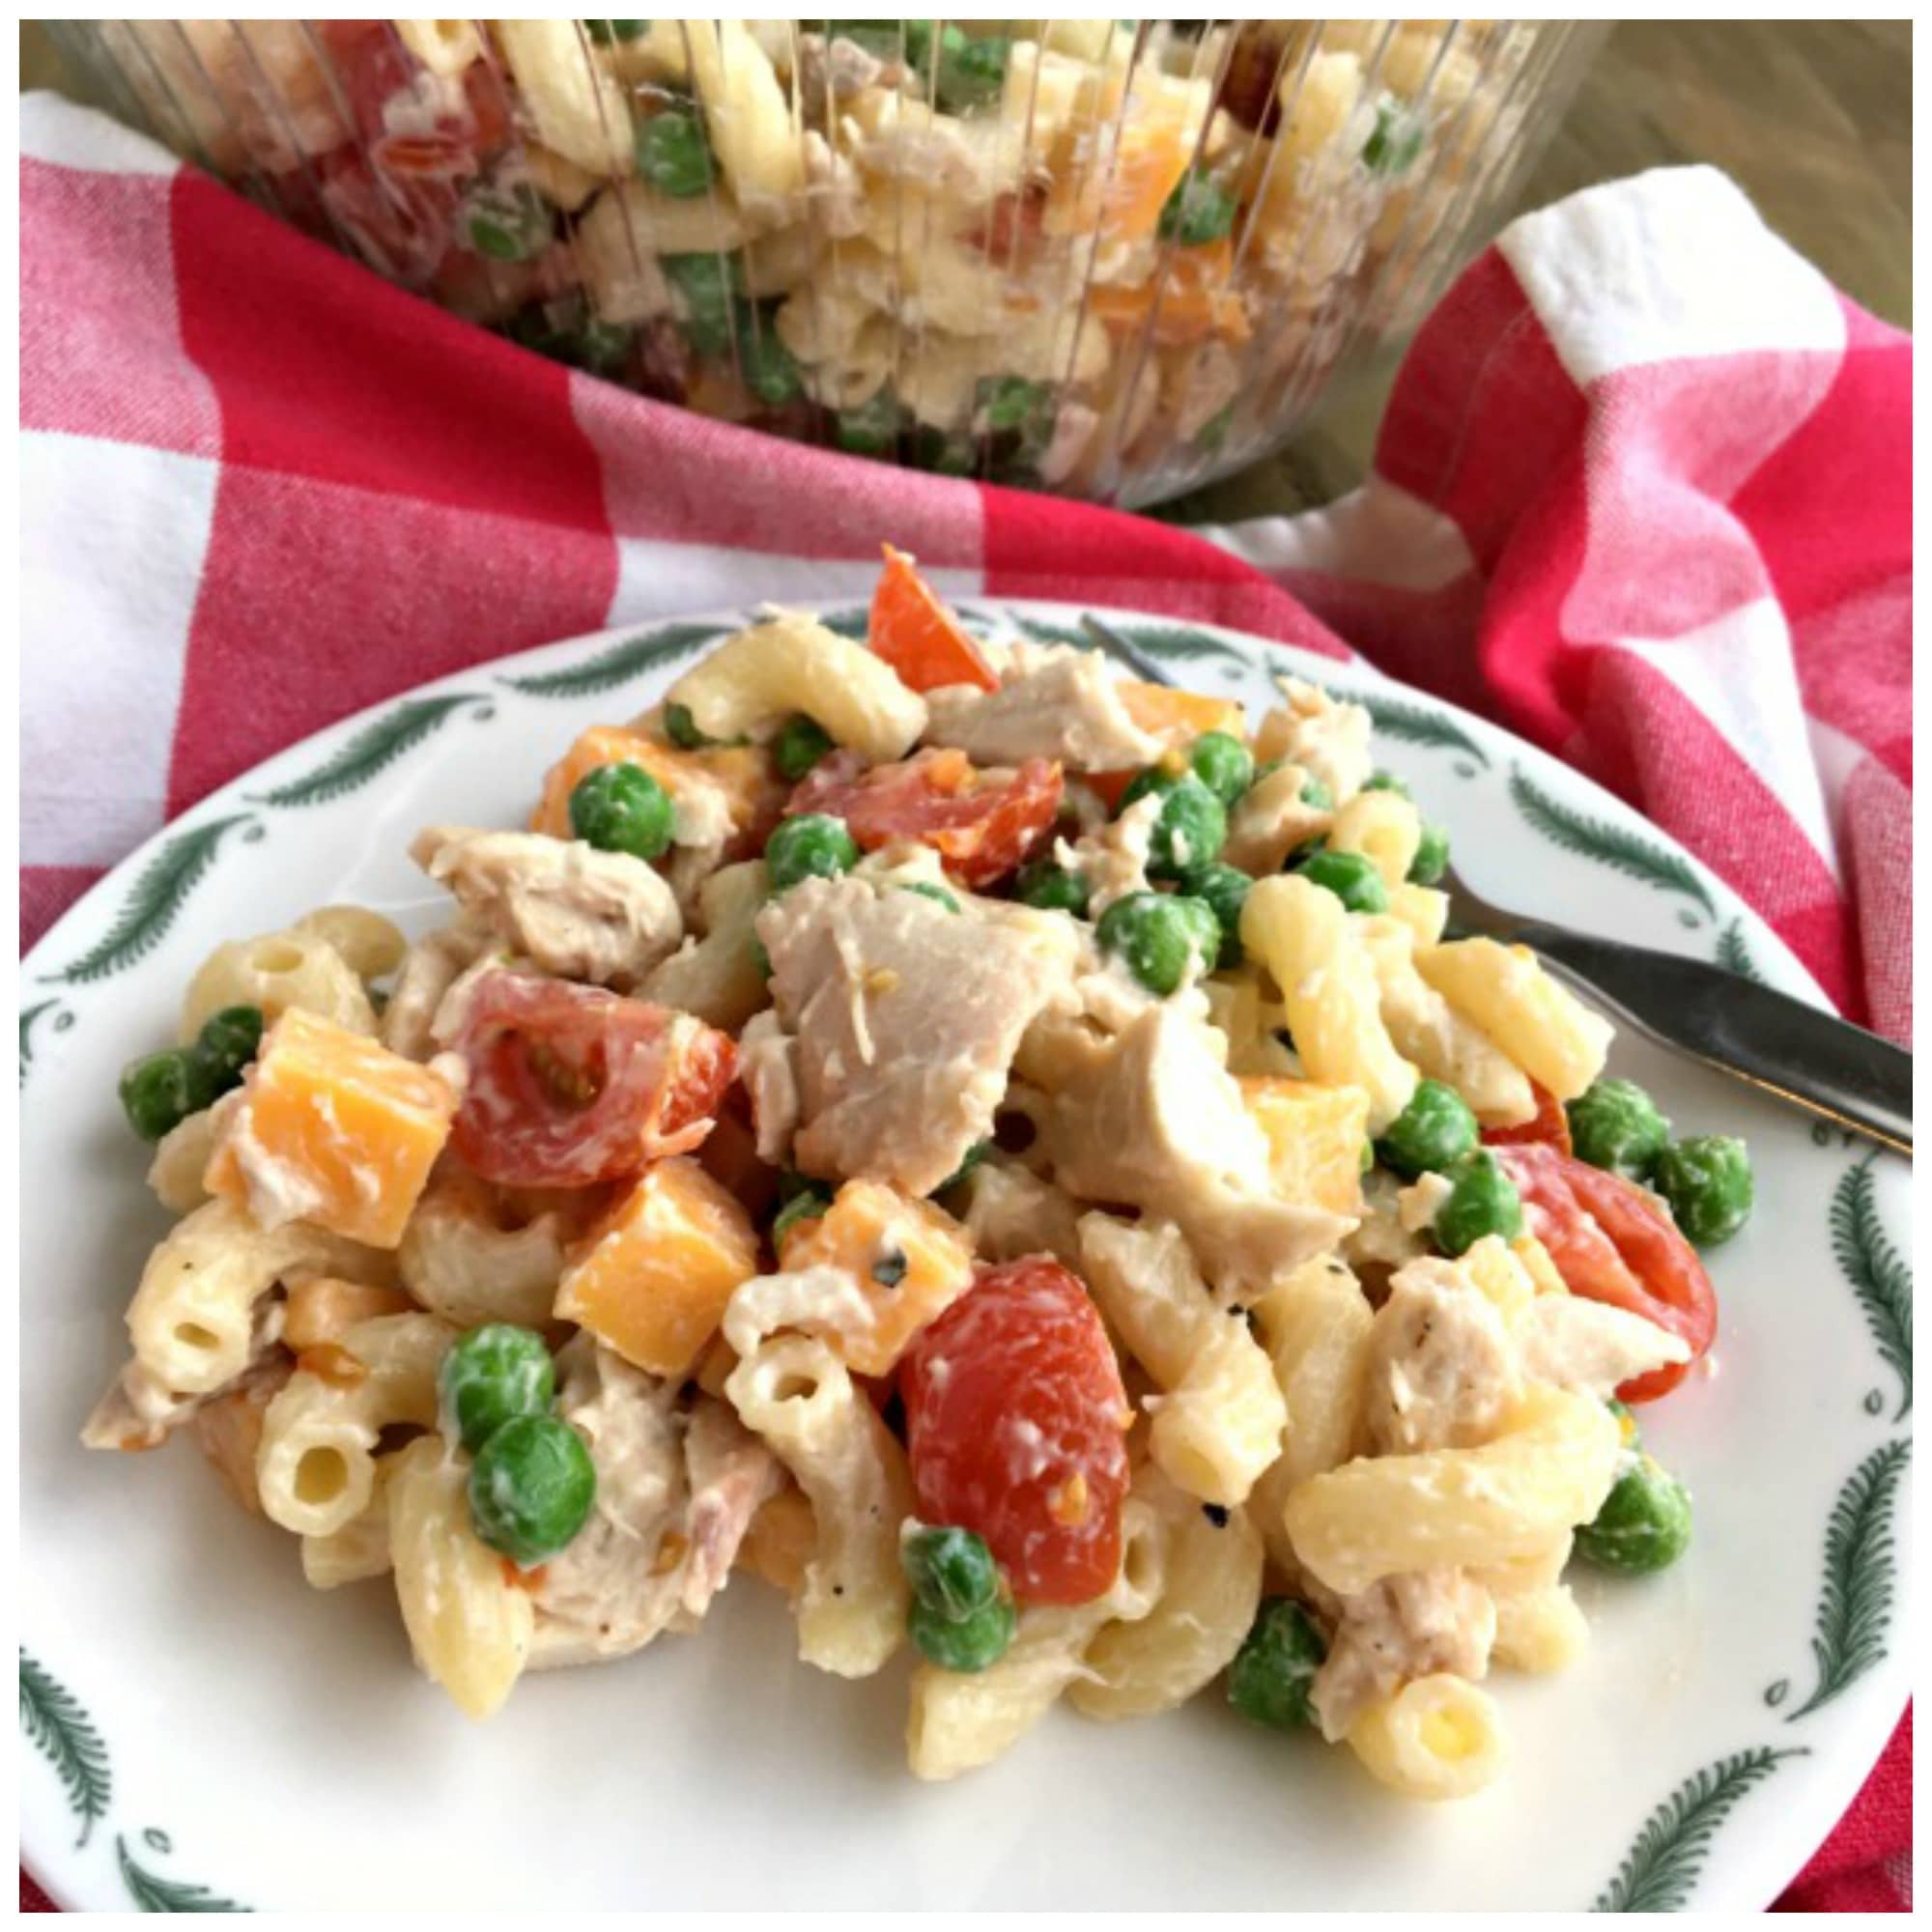 Loaded Macaroni Chicken Salad